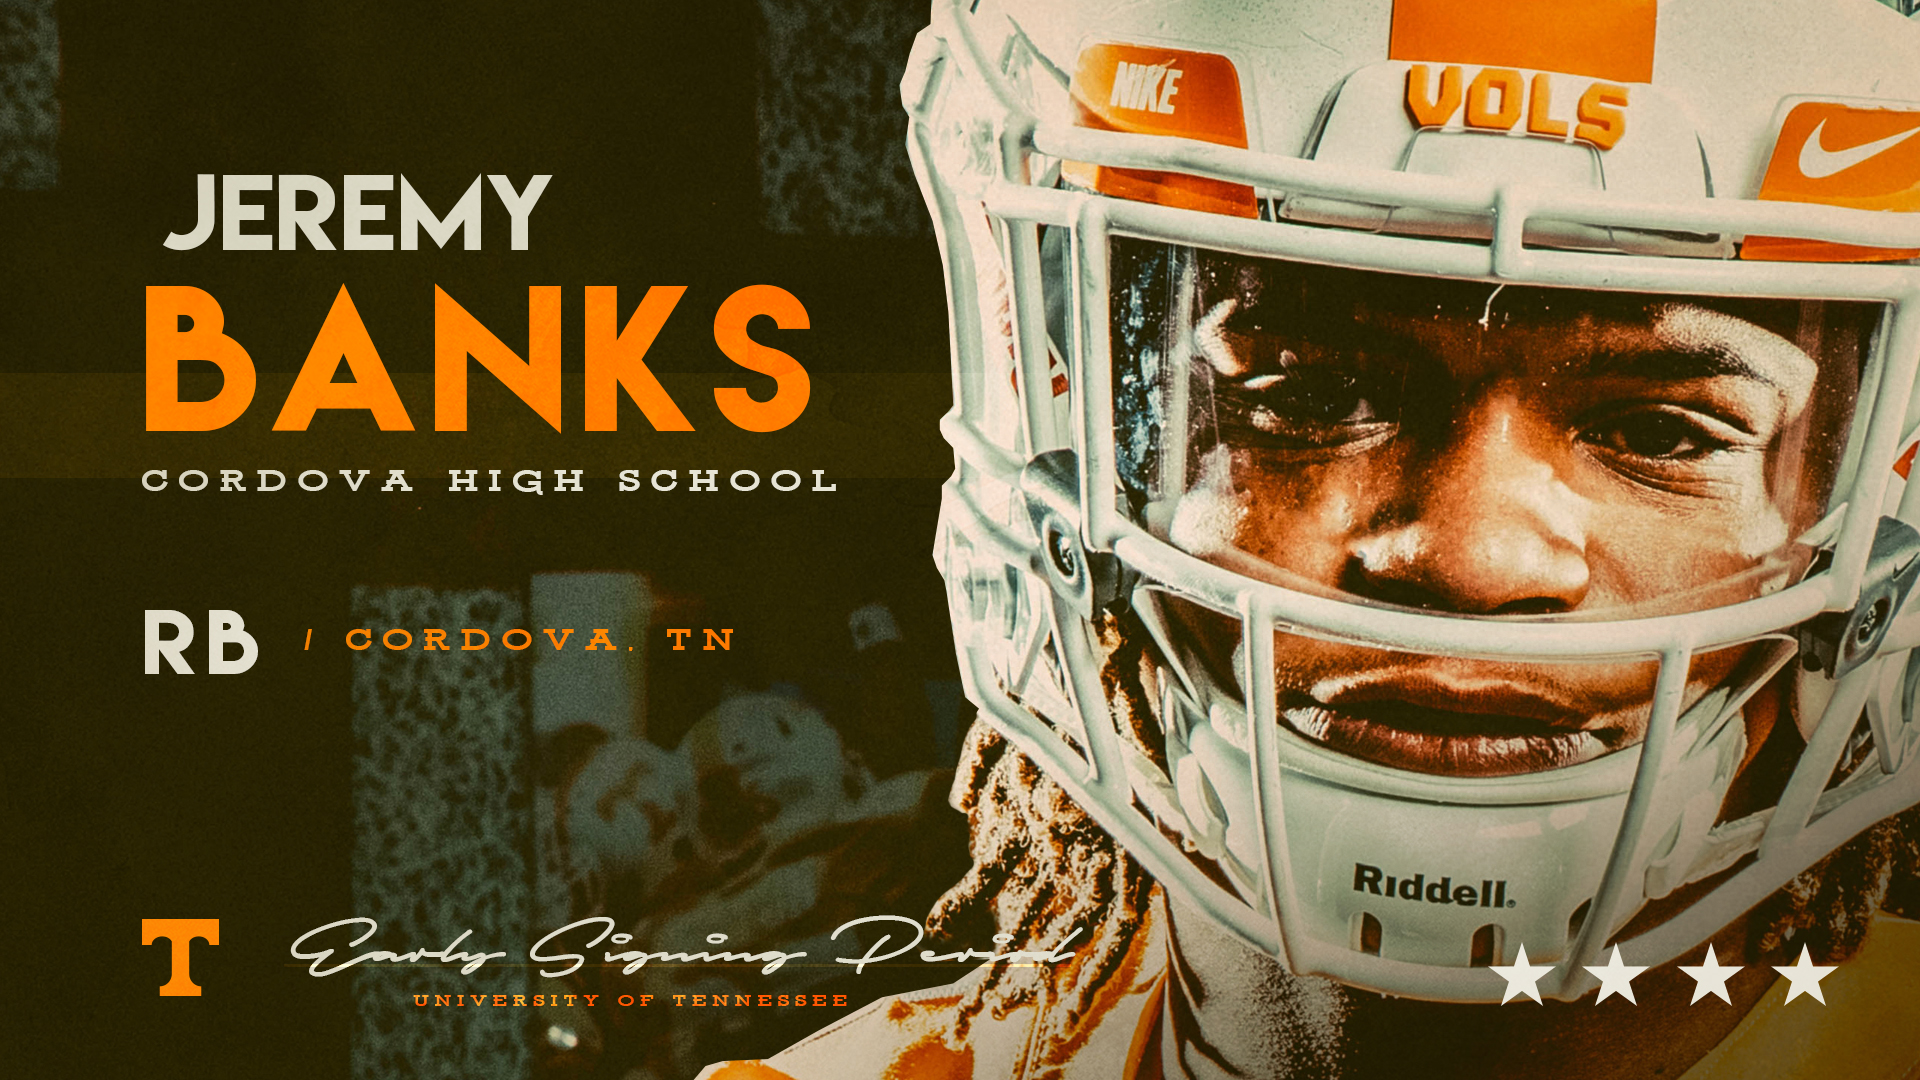 RB Jeremy Banks signs with the Vols, 6th in the books